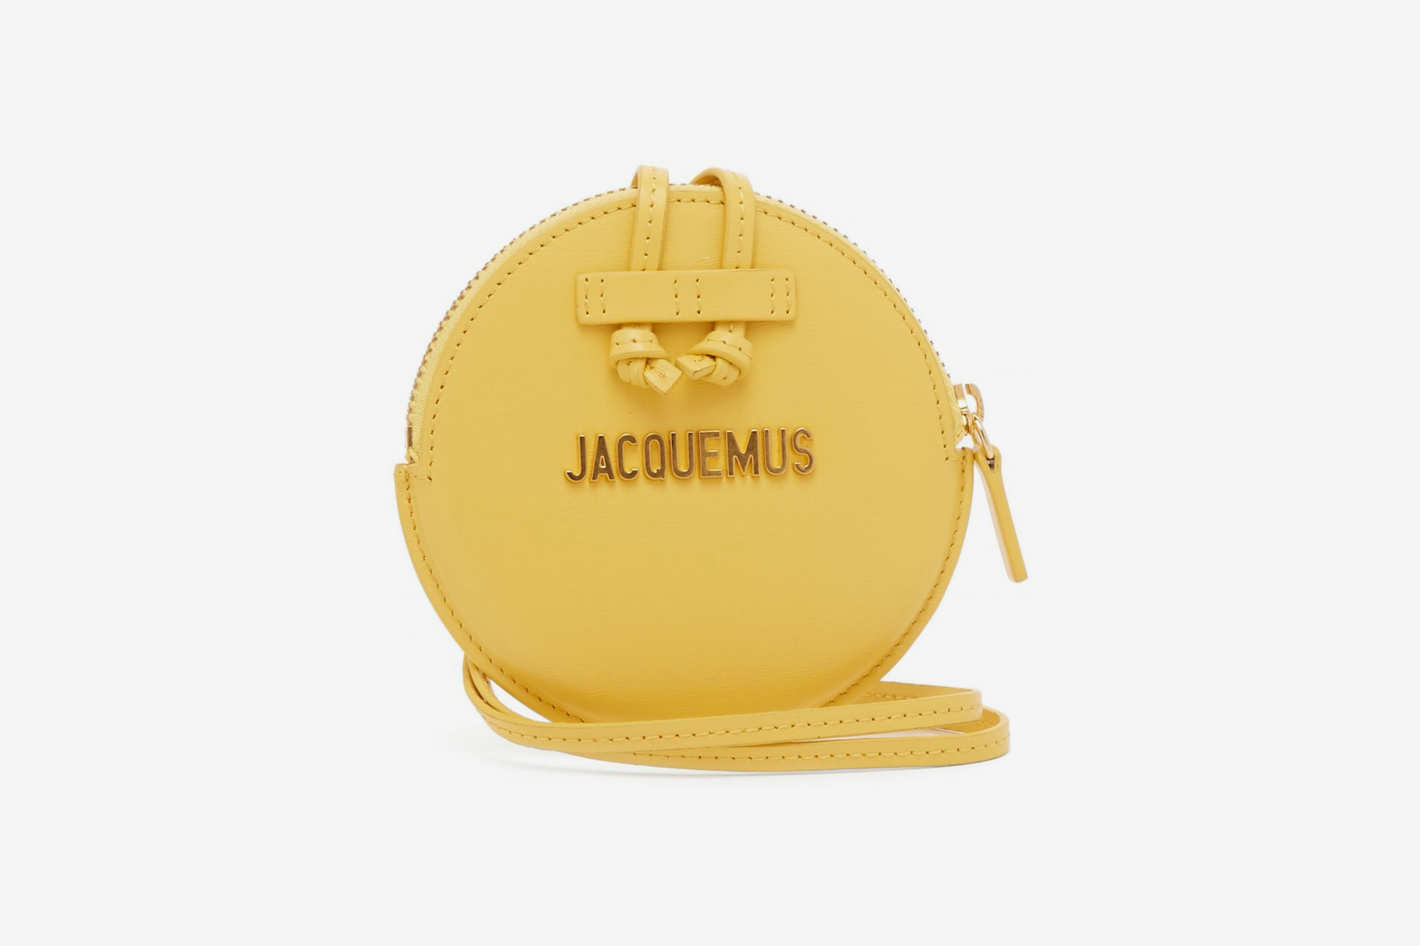 Jacquemus Le Pitchou leather coin purse